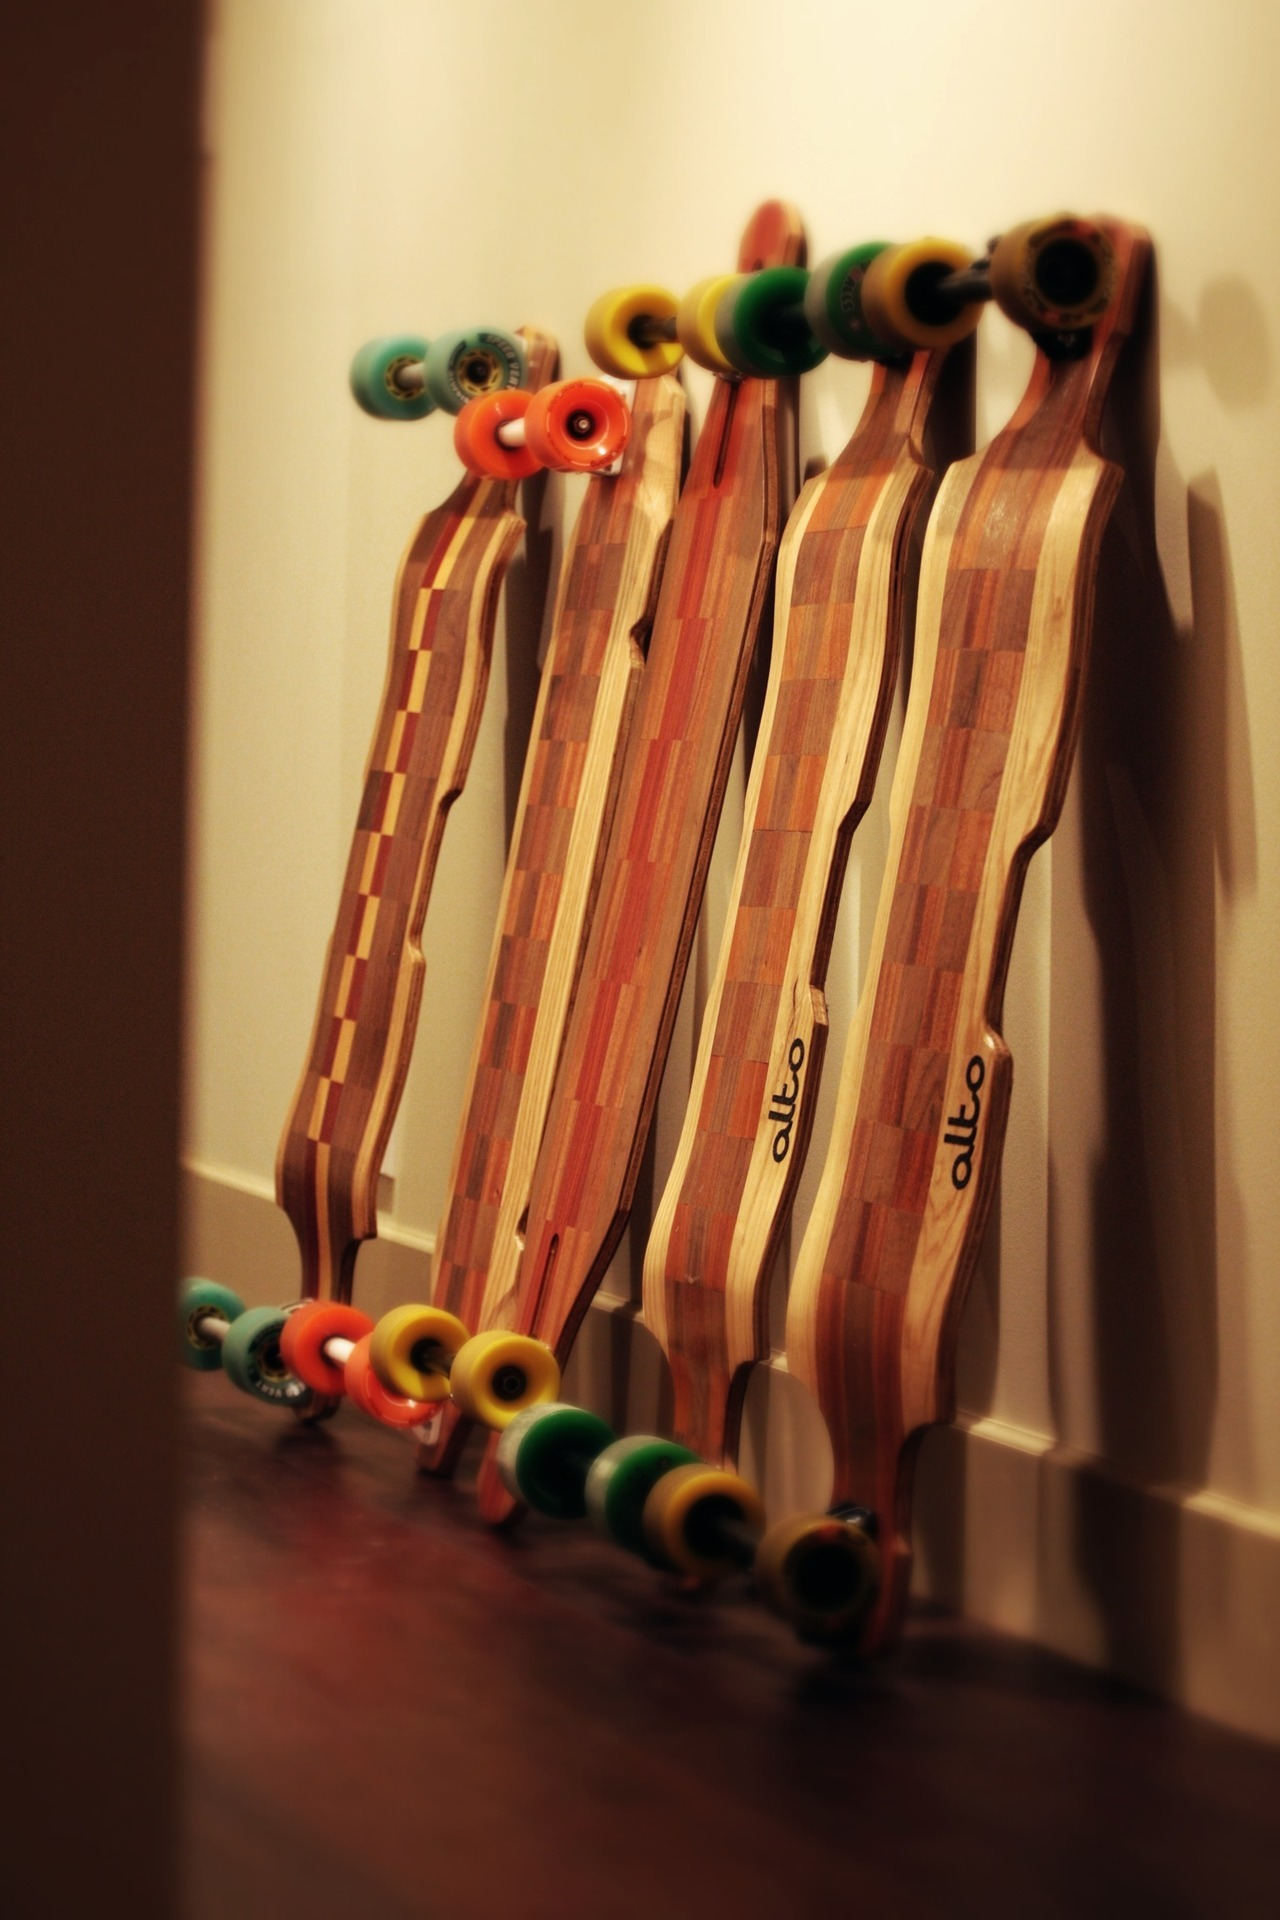 altolongboards: